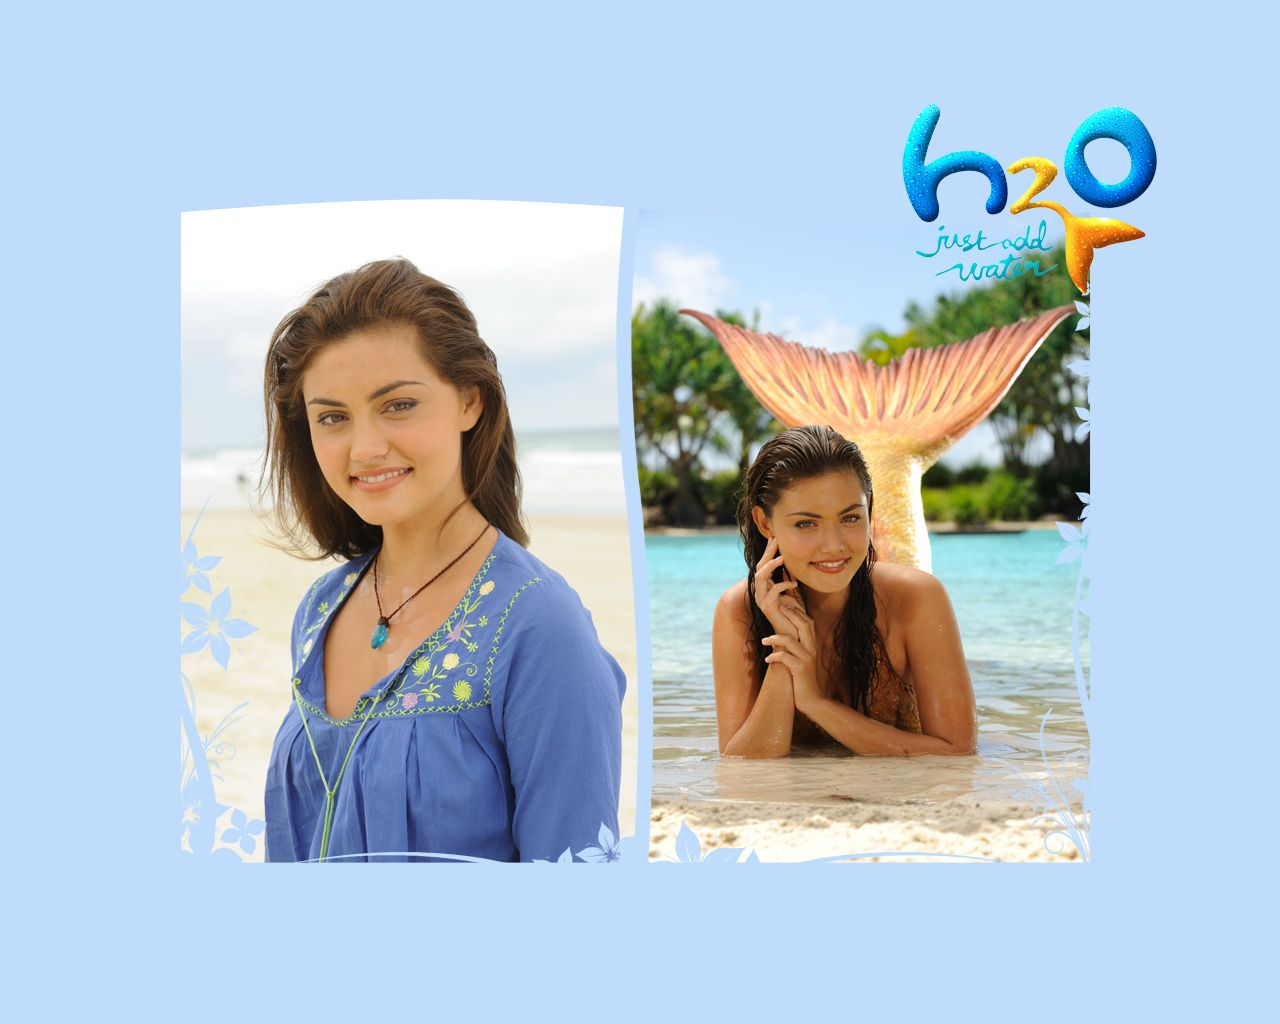 H2o just add water cleo h2o just add water wallpaper for H20 just add water wallpaper